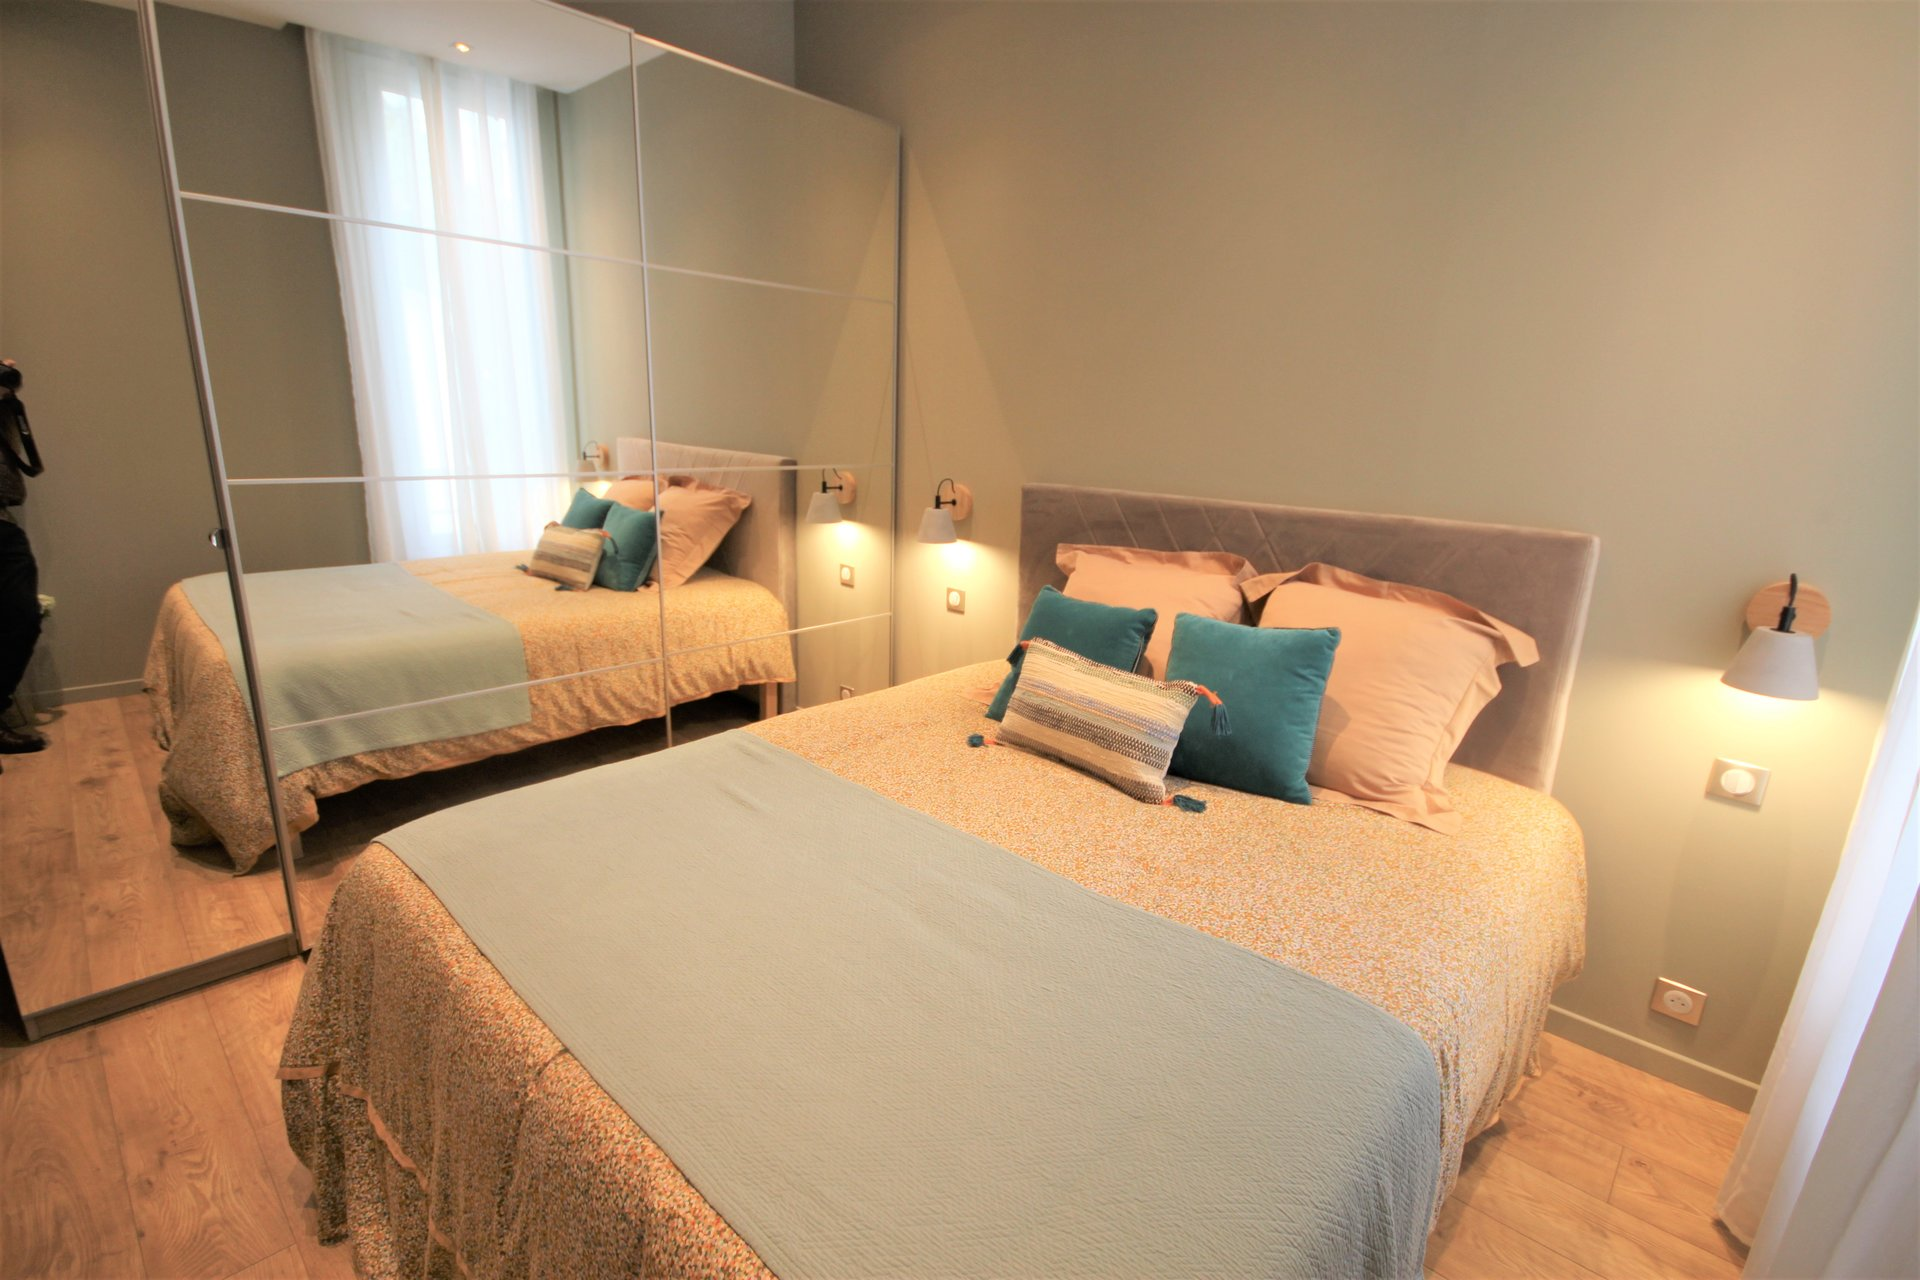 CANNES SALE 2 ROOMS RENOVATED IN QUIET NEAR CITY CENTER